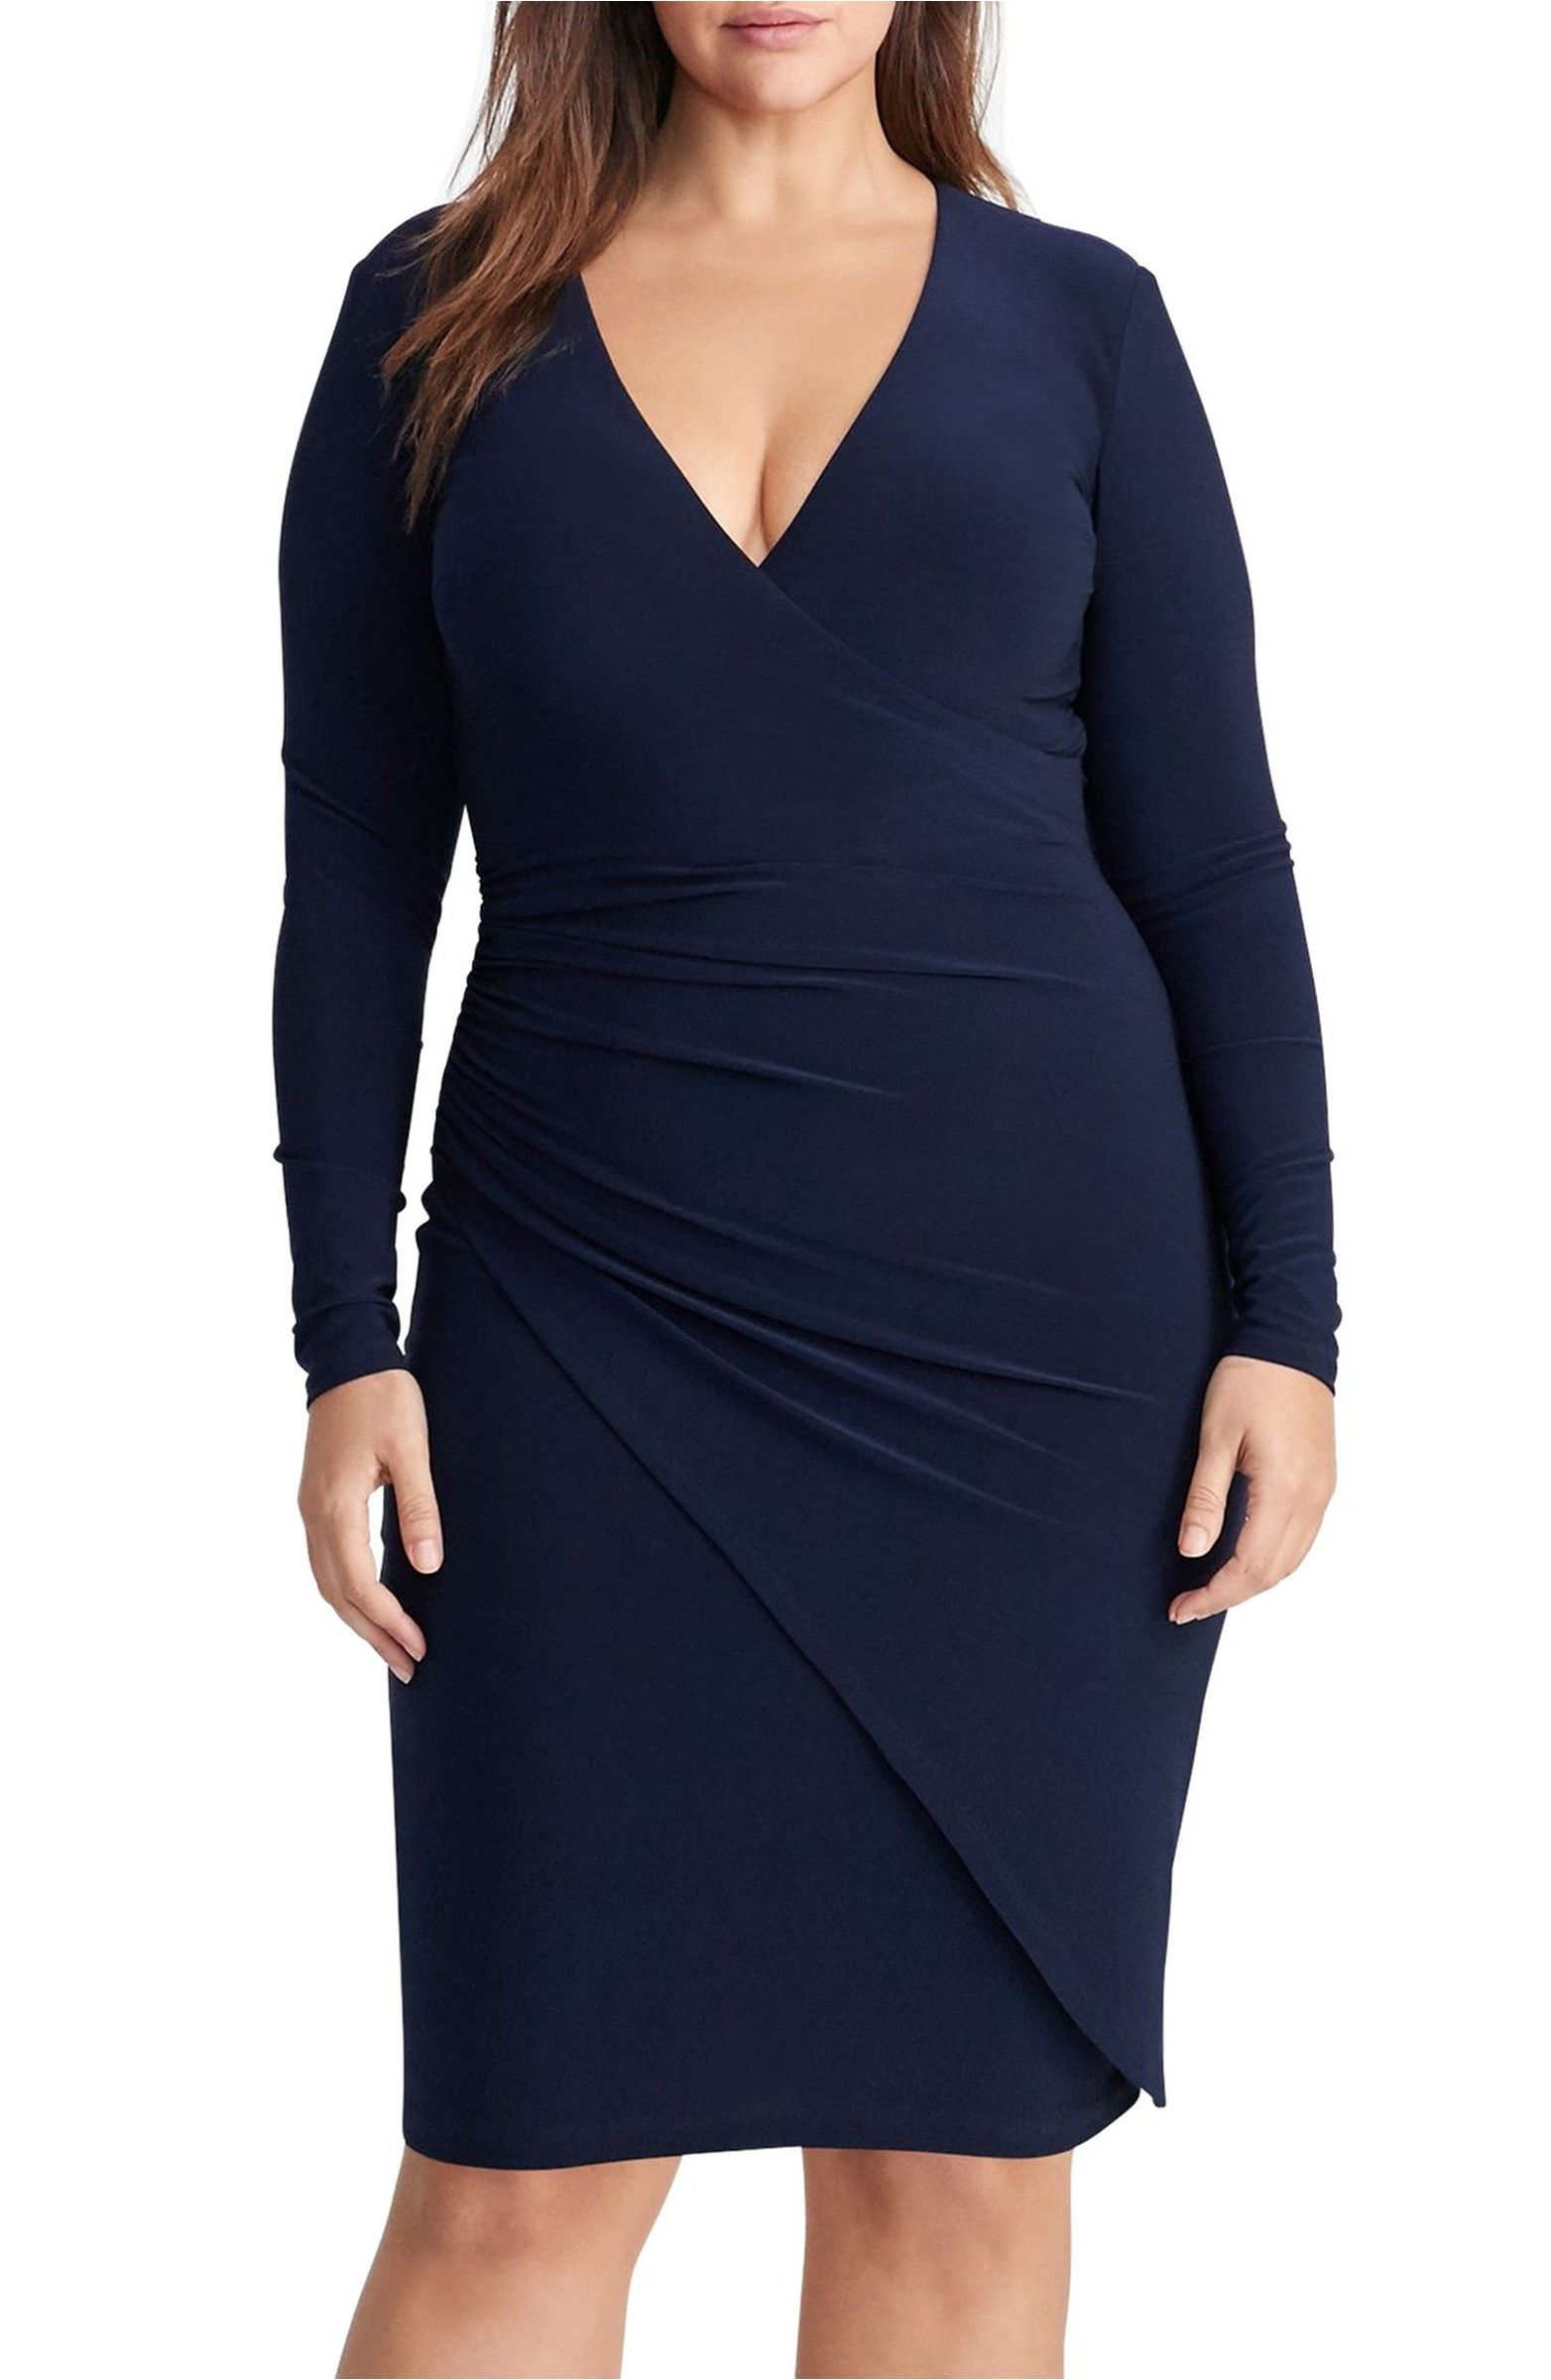 Ruched jersey faux wrap dress faux wrap dress marriage and wedding